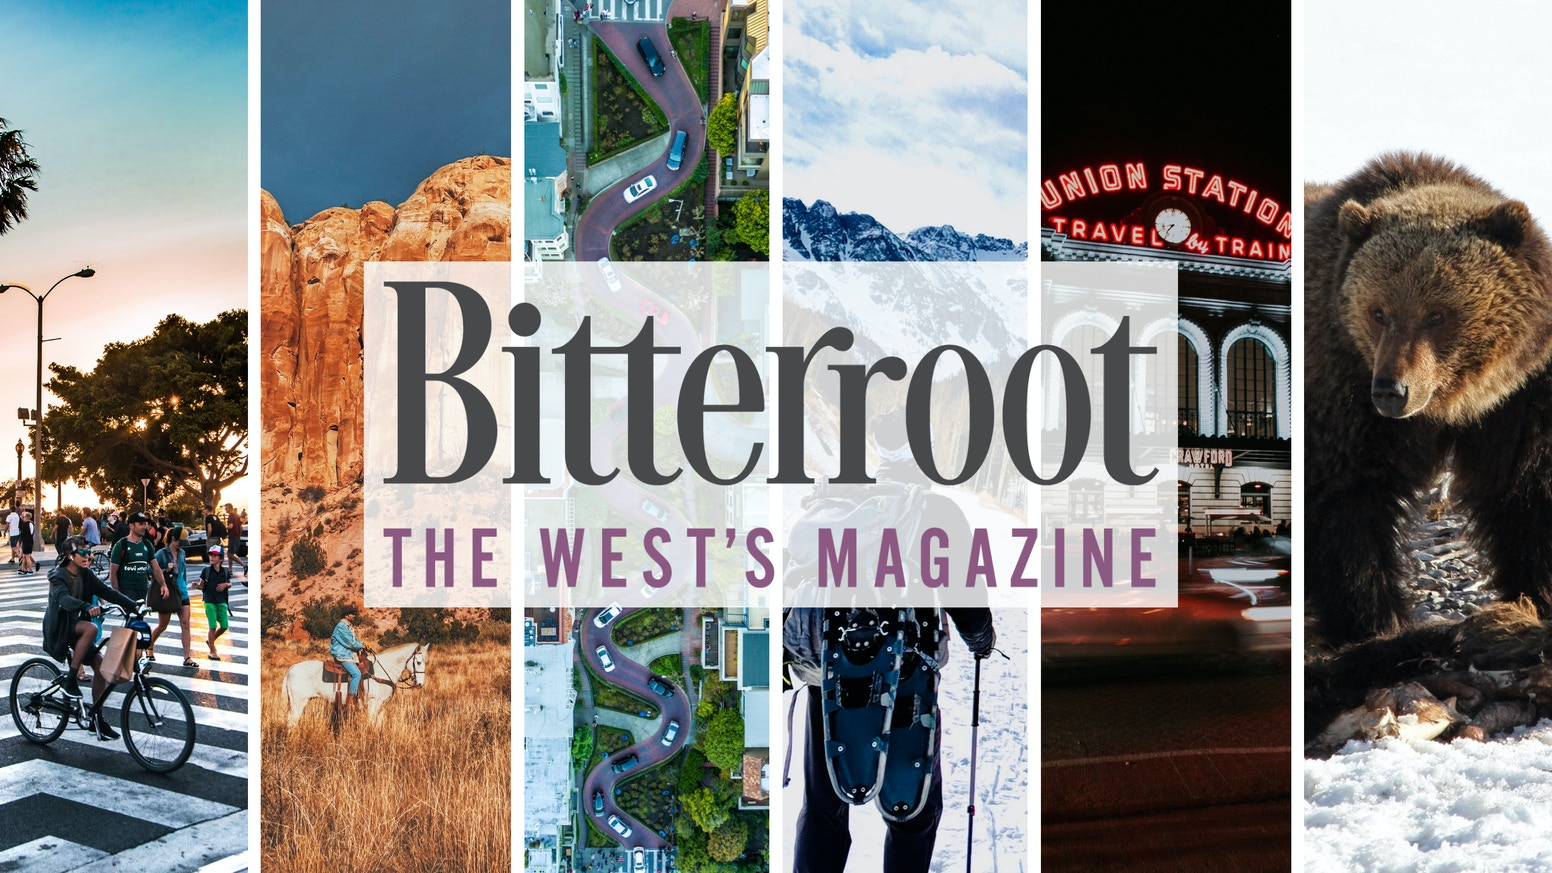 Bitterroot is a reader-supported online magazine about the politics, economy, culture, and environment of the U.S. West.